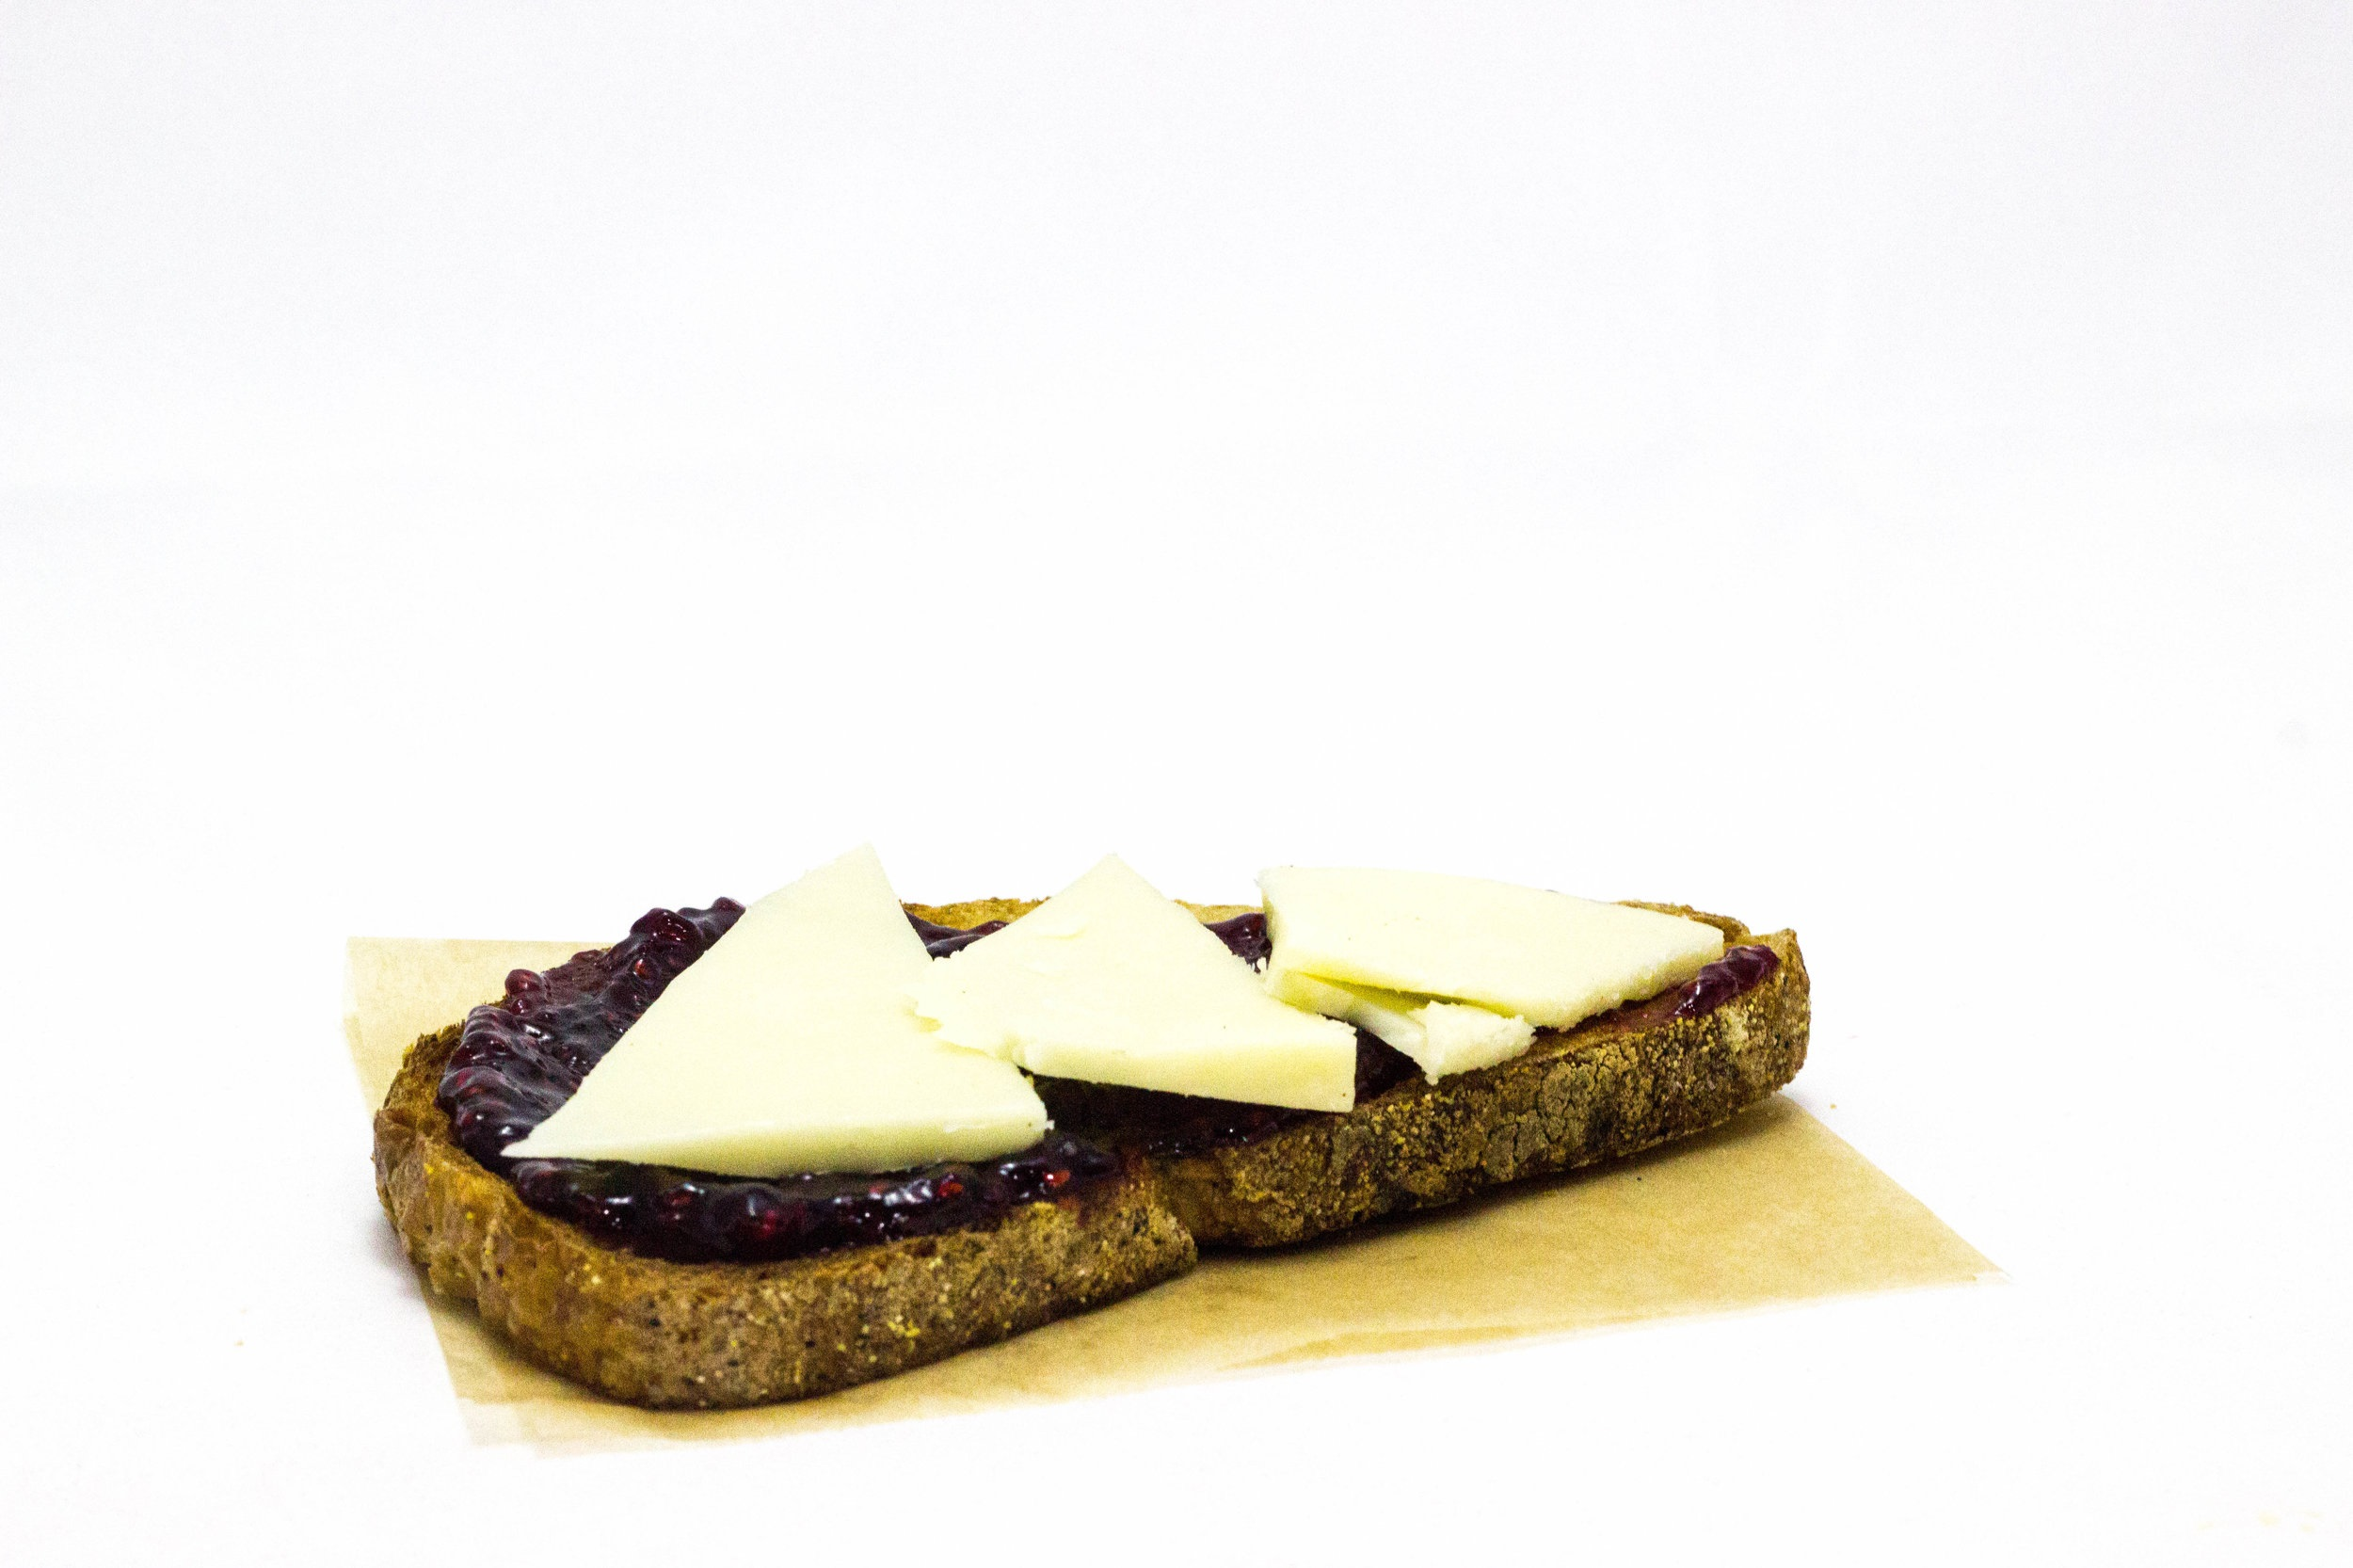 Cheddar + Jam Toast - Soda bread slice topped with raw white cheddar and your choice of strawberry or raspberry jam